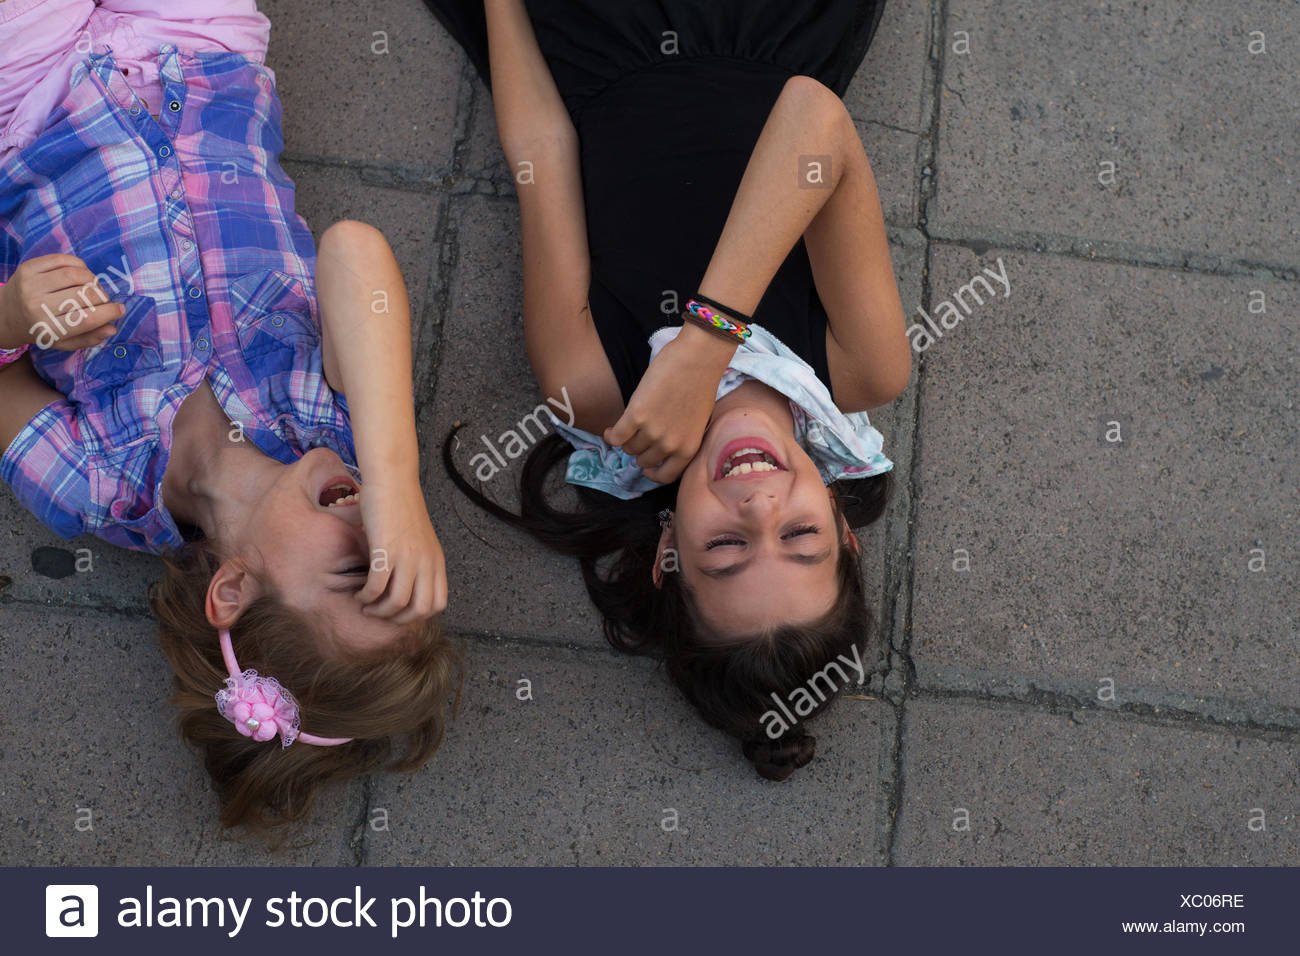 Two girls lying on ground laughing Stock Photo